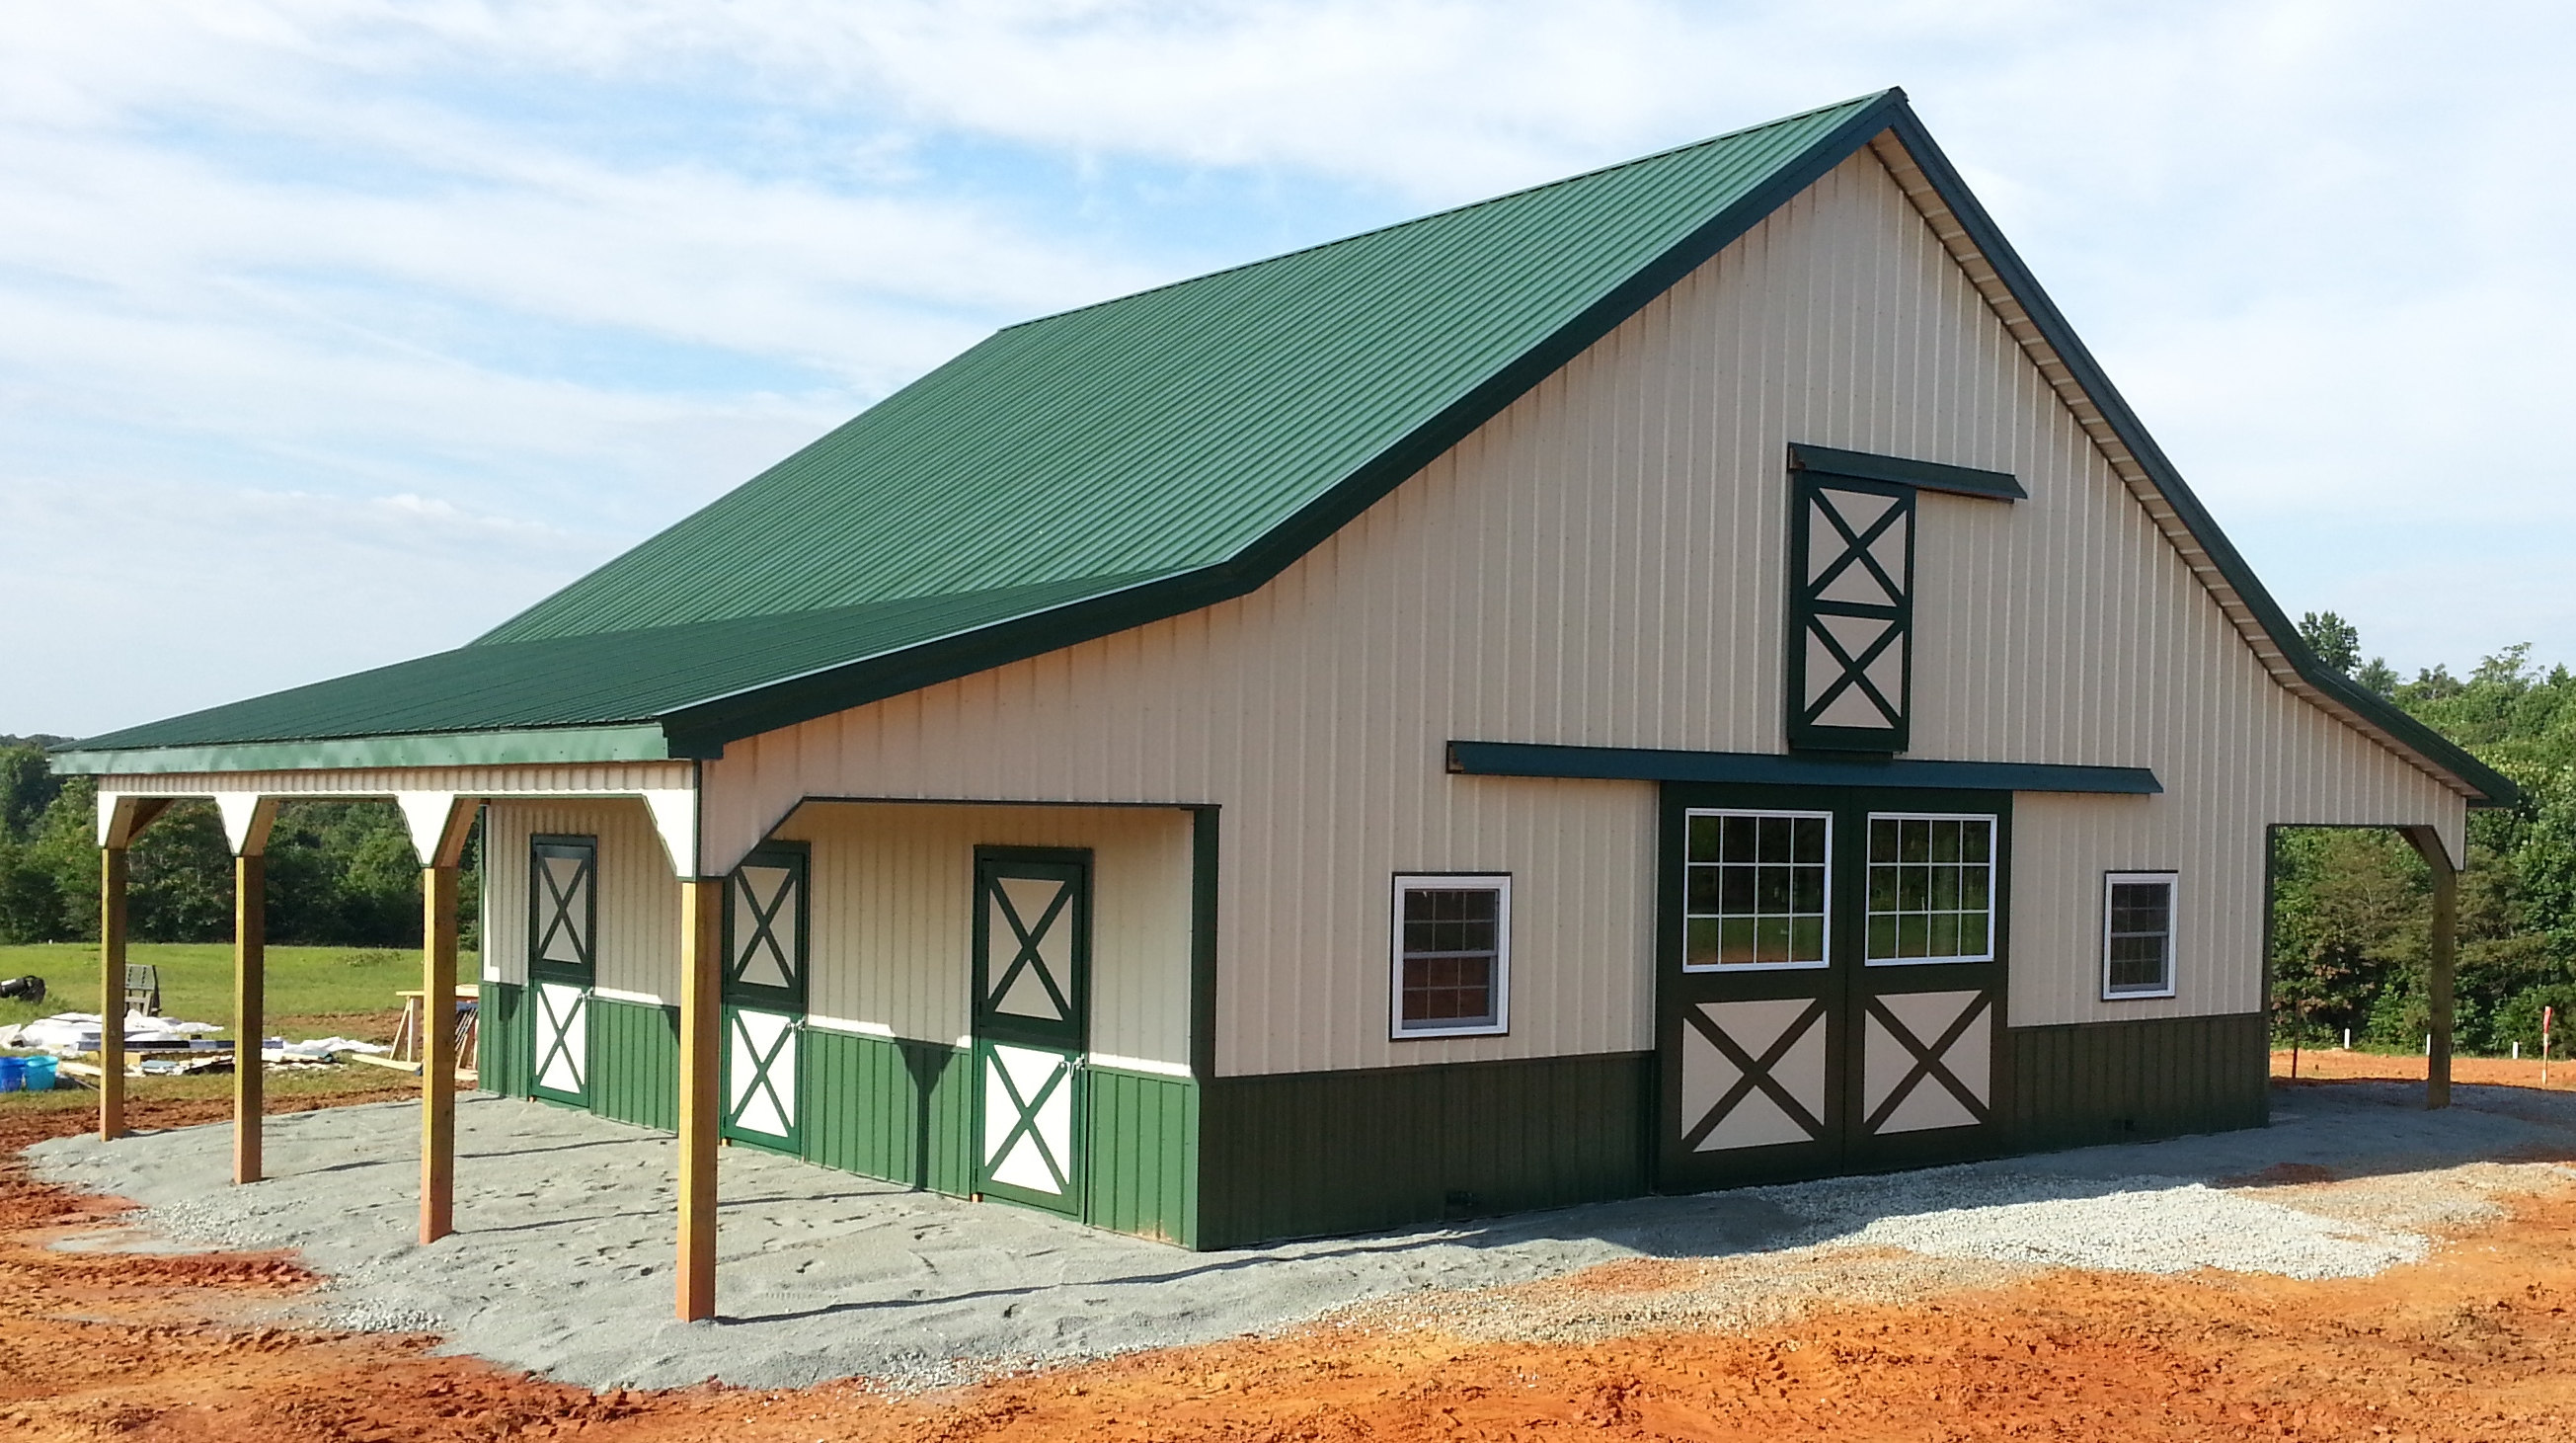 Residential pole barn kits house plans Pole home plans